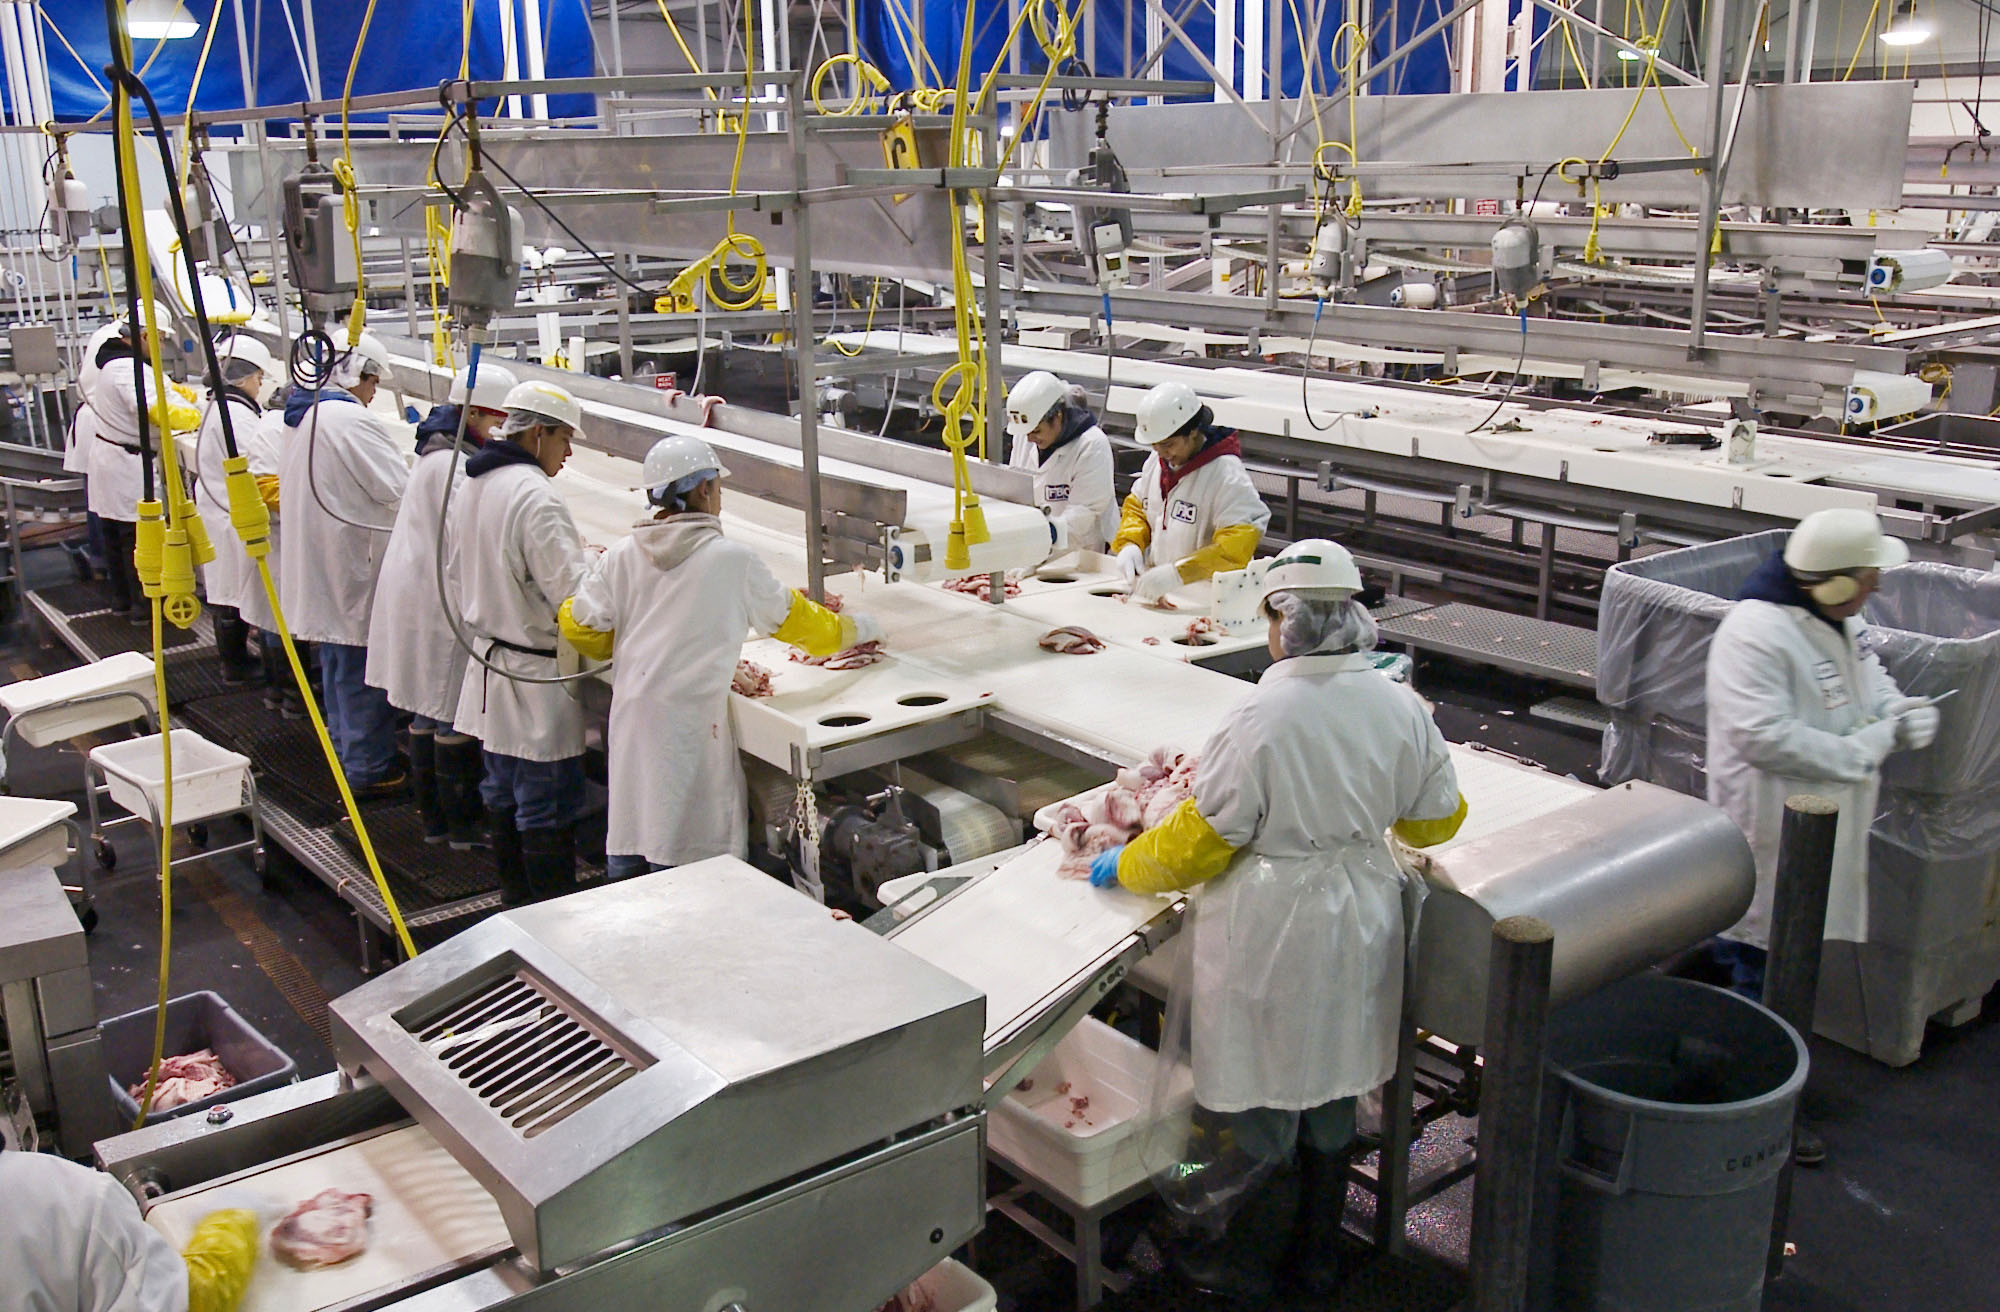 Cyprus: Low competitiveness in manufacturing sector, says EU Commission